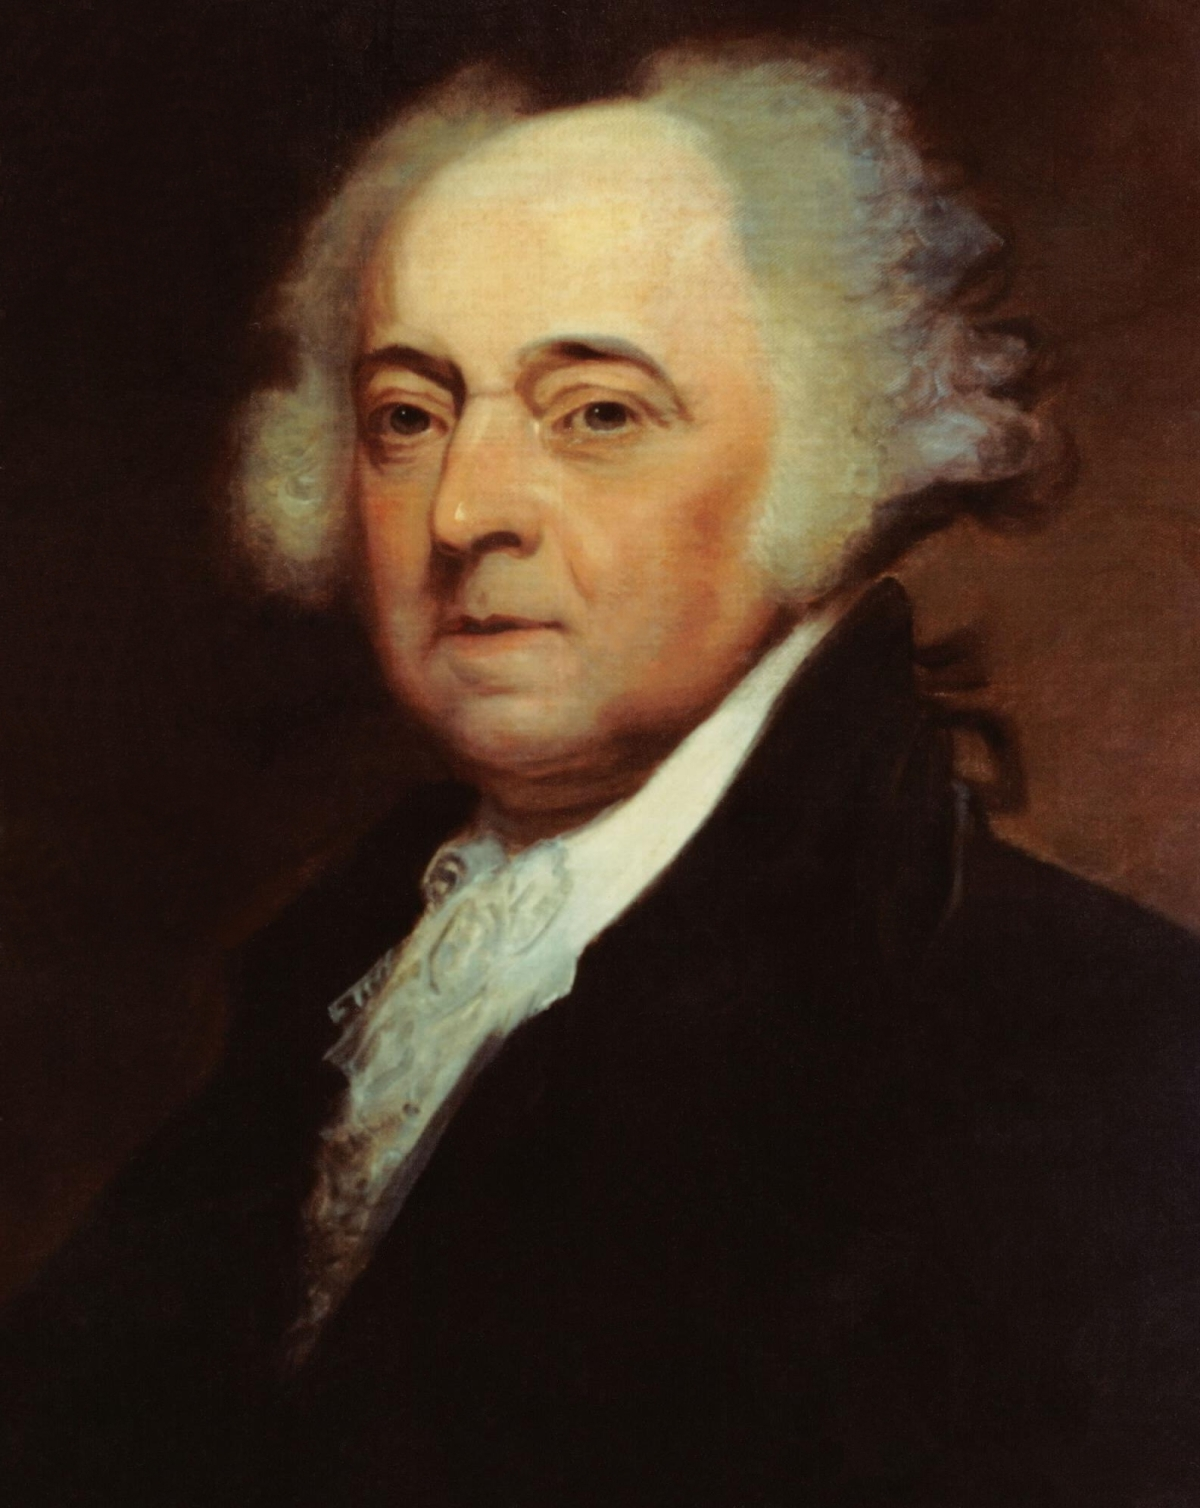 us_navy_031029-n-6236g-001_a_painting_of_president_john_adams_1735-1826_2nd_president_of_the_united_states_by_asher_b-_durand_1767-1845-crop